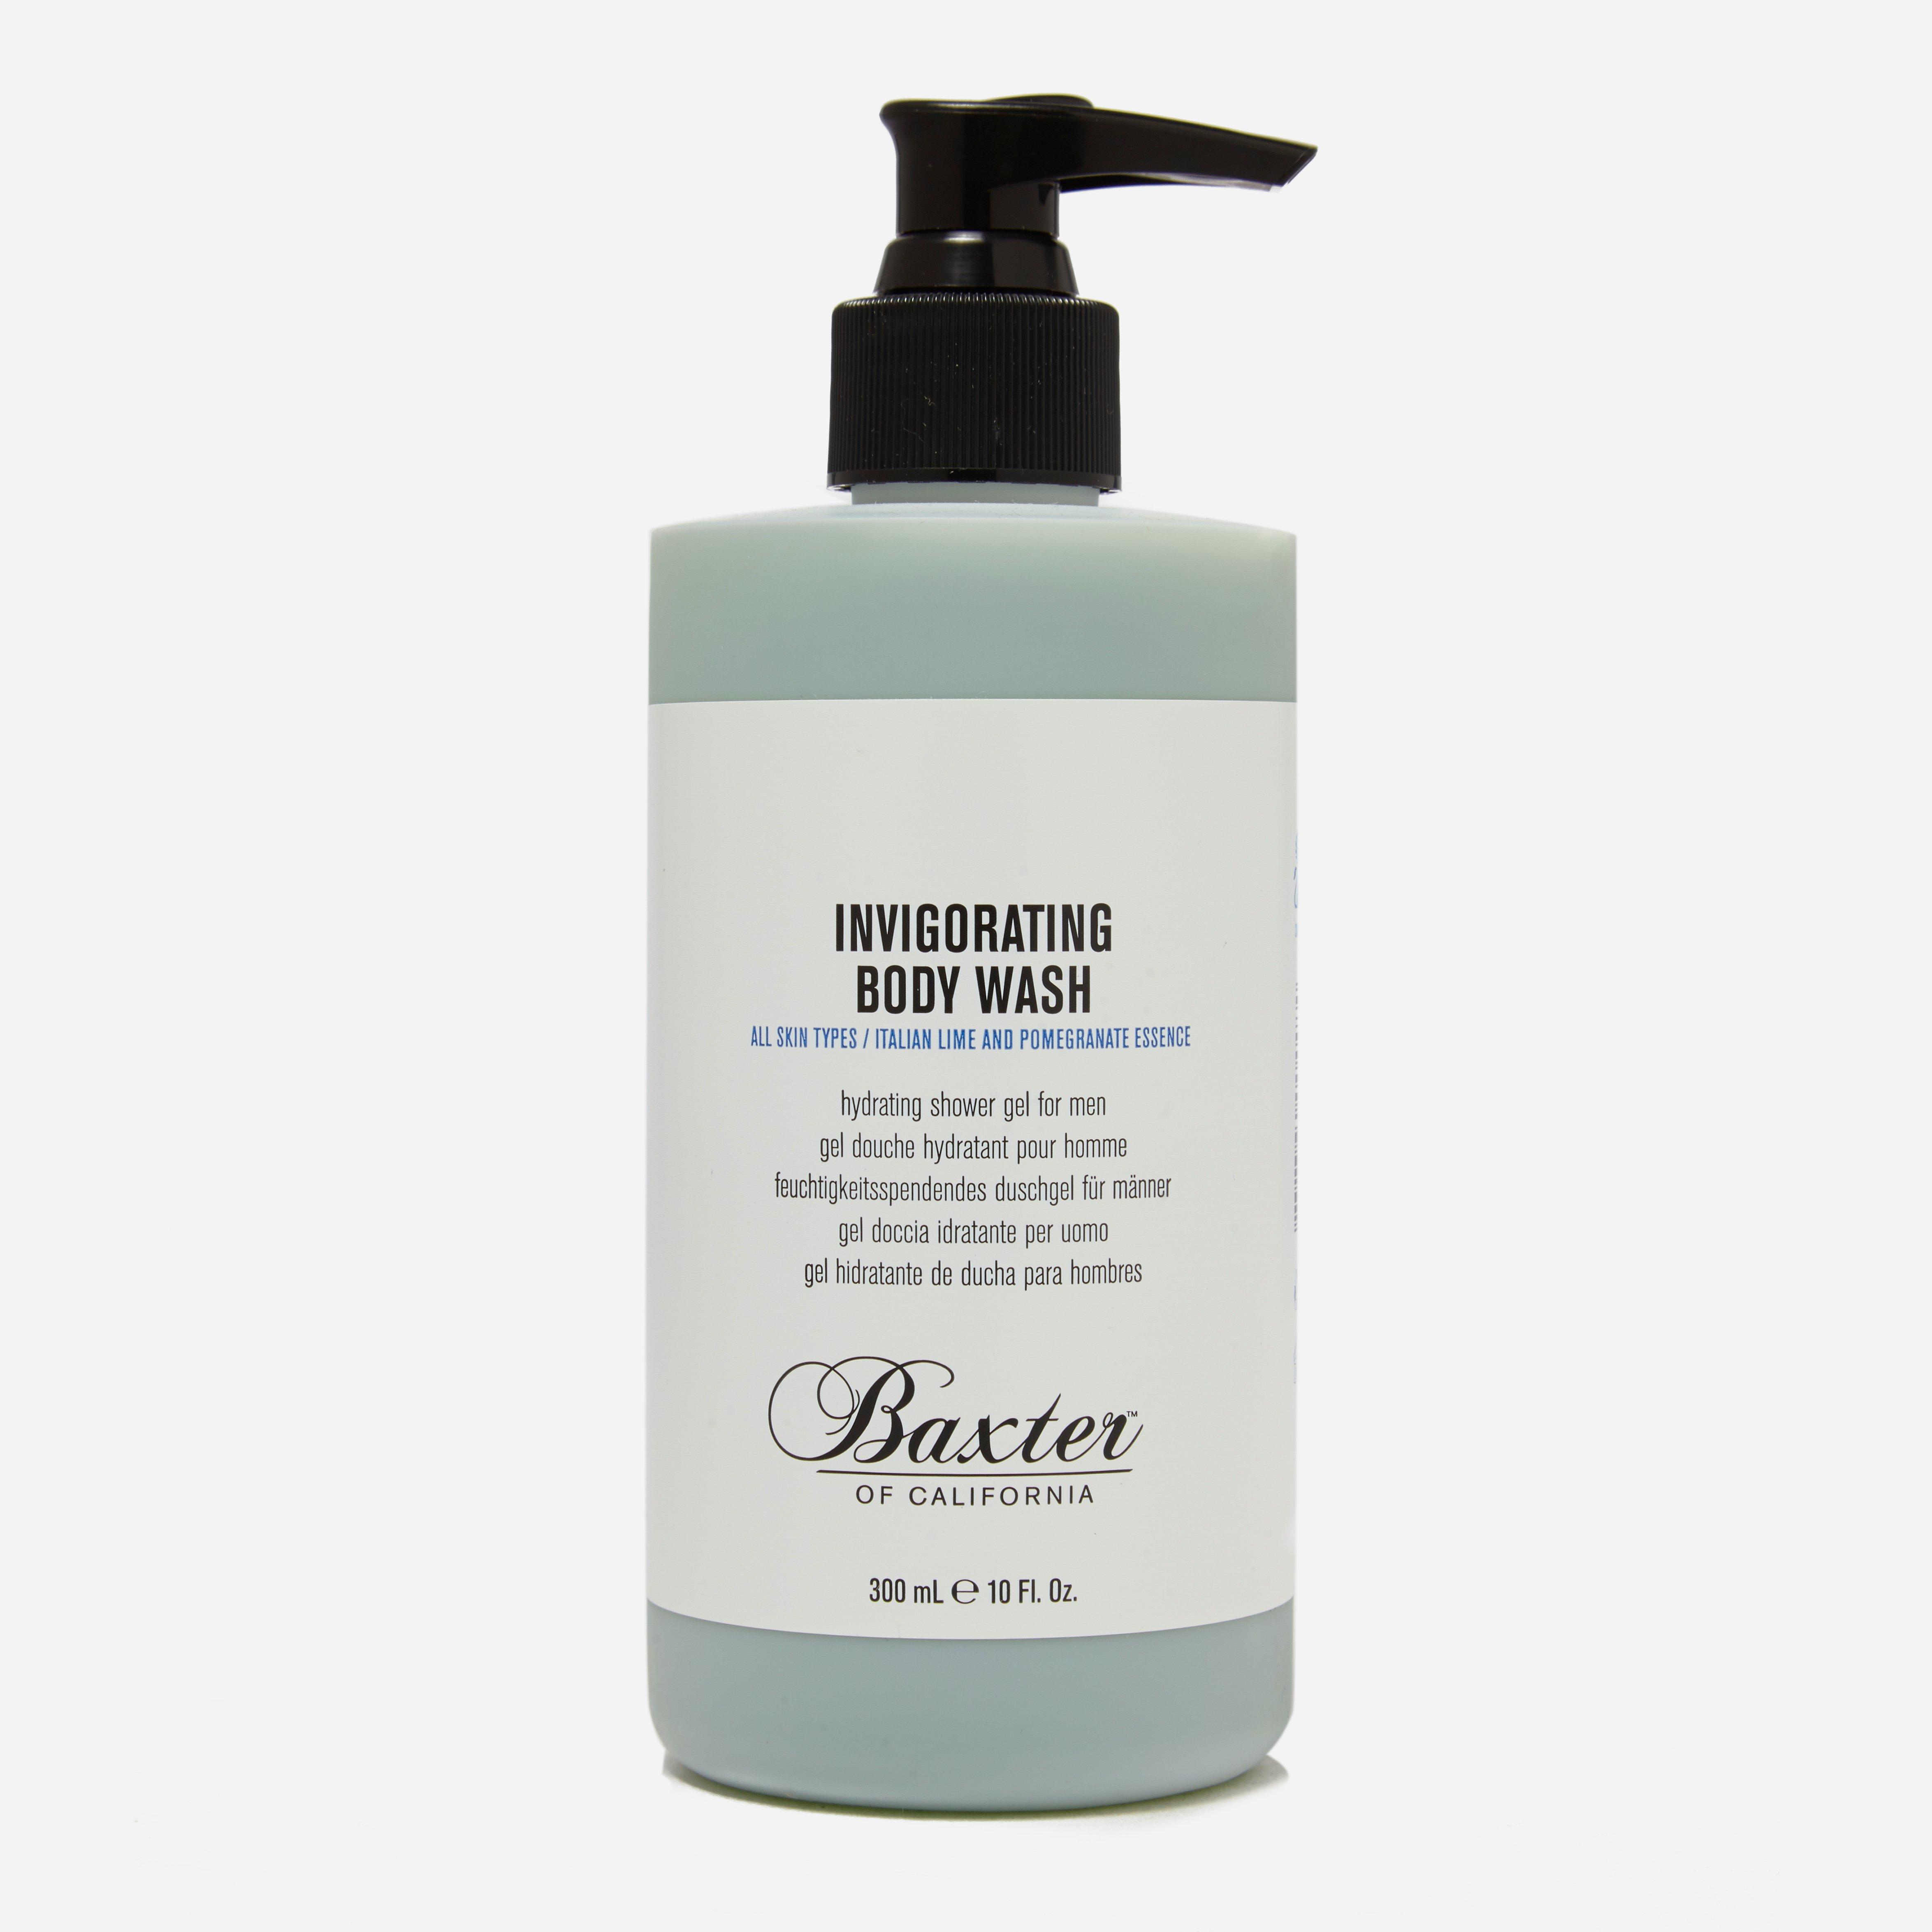 Baxter Of California Invigorating Body Wash Italian Lime